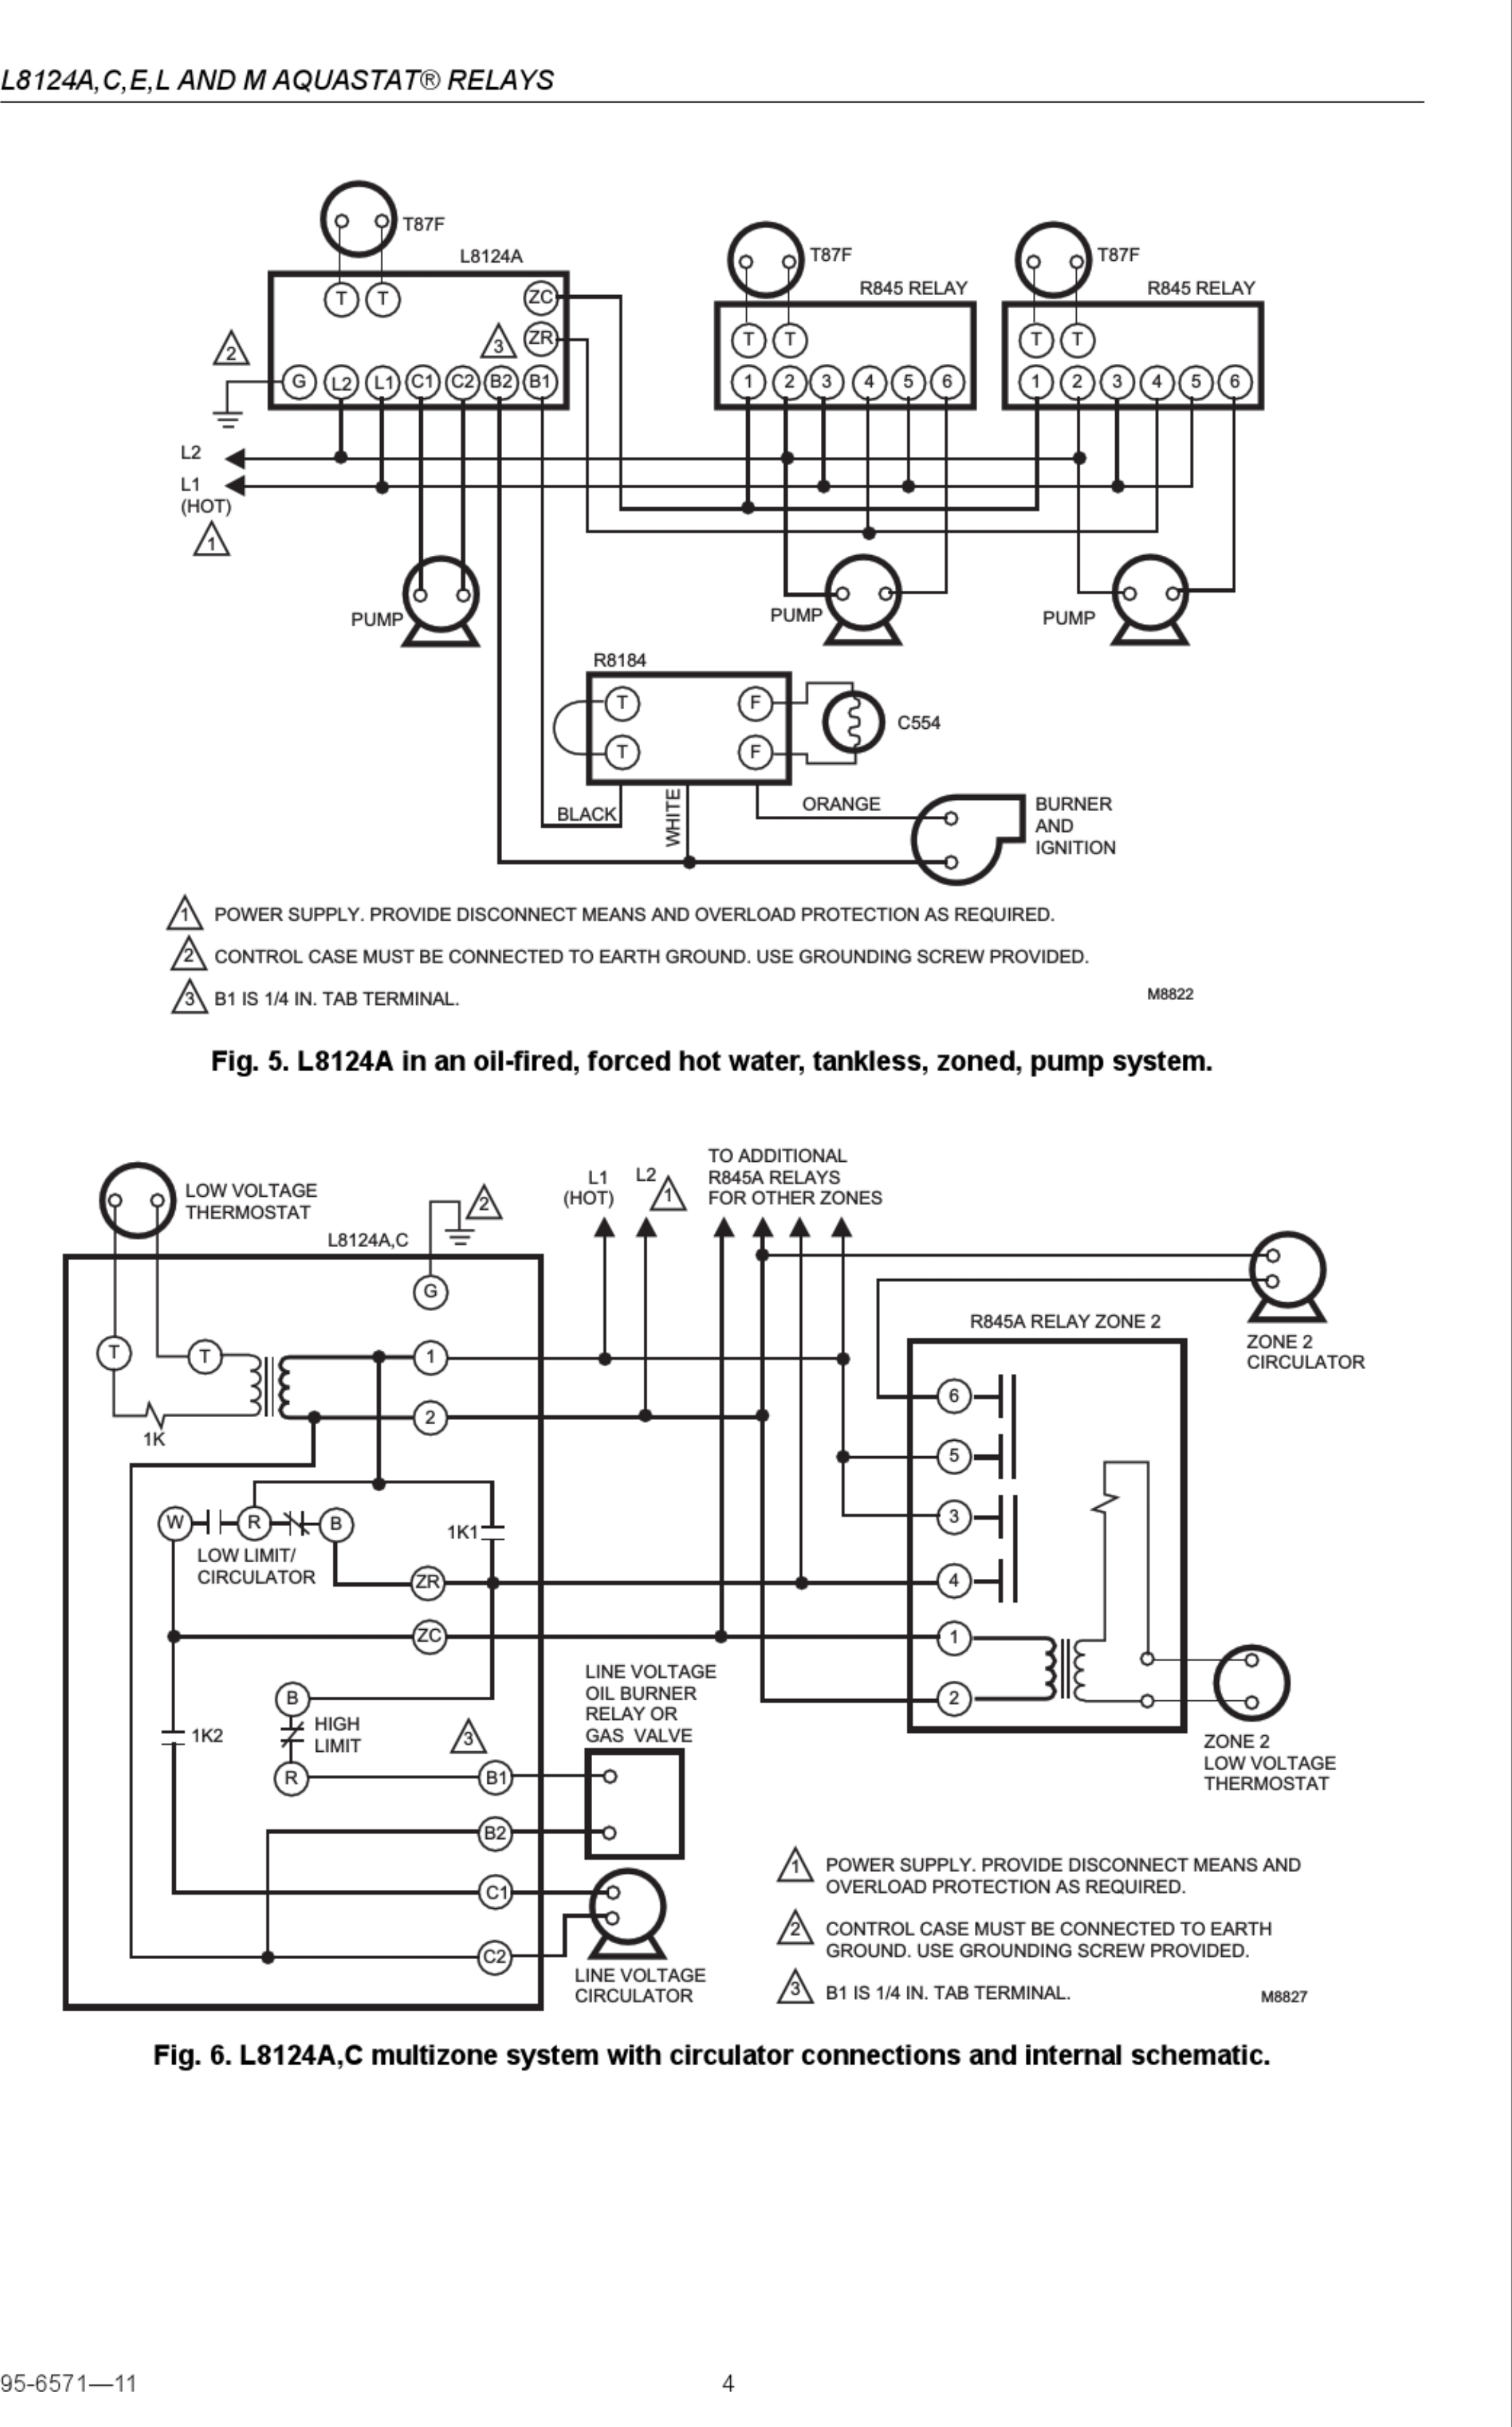 Honeywell Aquastat L E Wiring Diagram